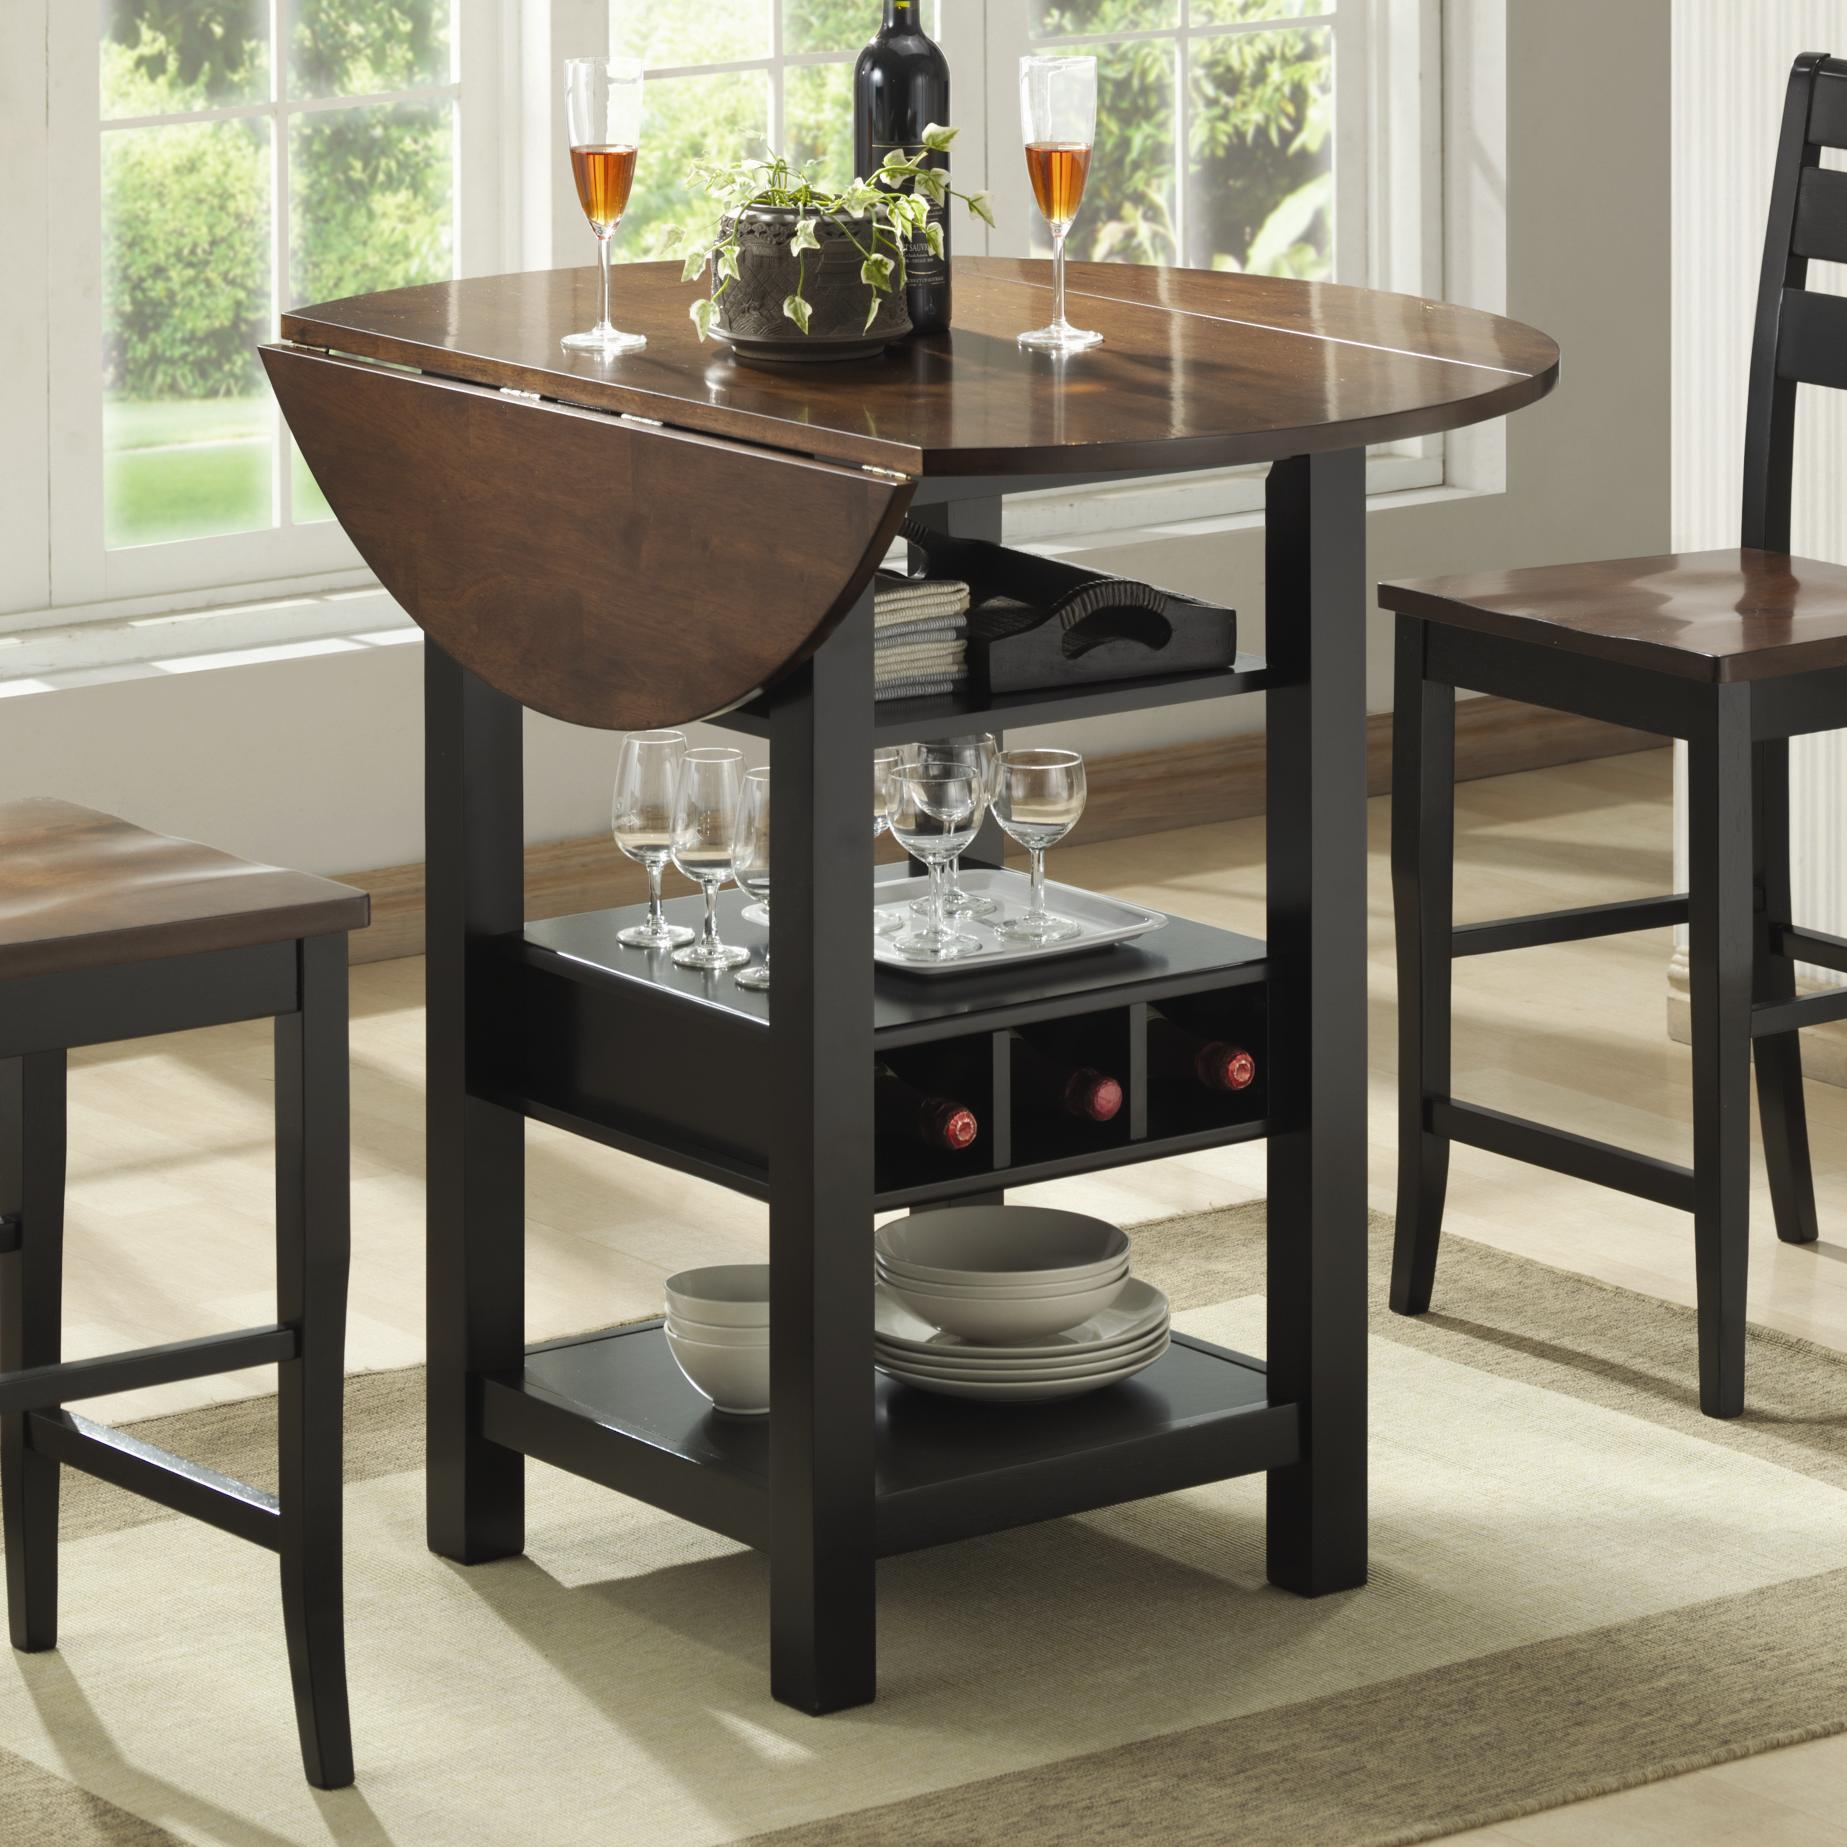 ridgewood drop leaf pub table with wine rack bernards wayside furniture products color dining accent home mini bar white chest antique black side outdoor drink cooler coffee